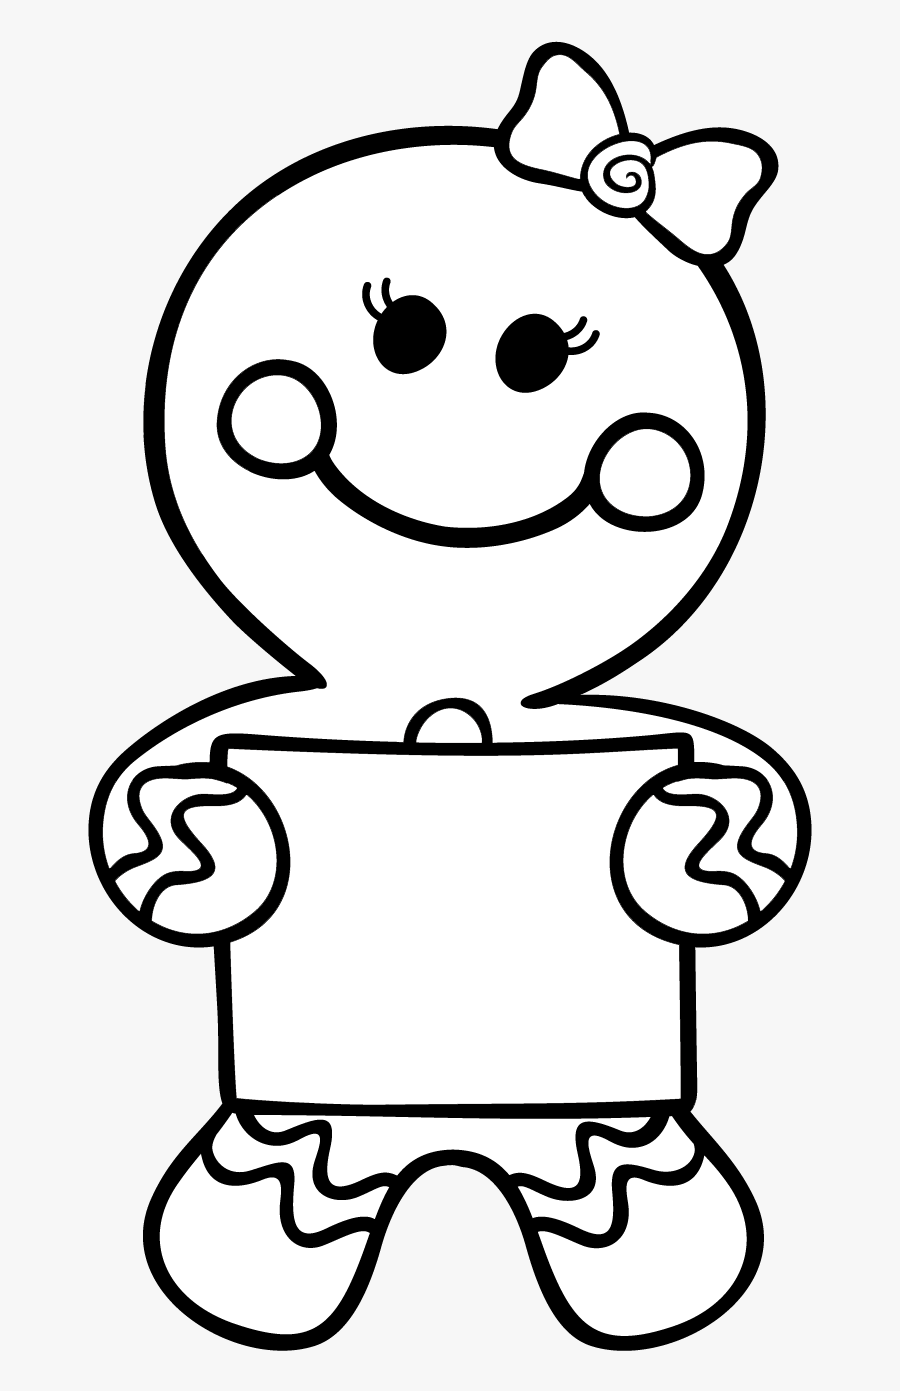 Gingerbread Man Story, Saint Nicolas, Theme Noel, Pain, - Christmas Gingerbread Man Colouring Pages, Transparent Clipart